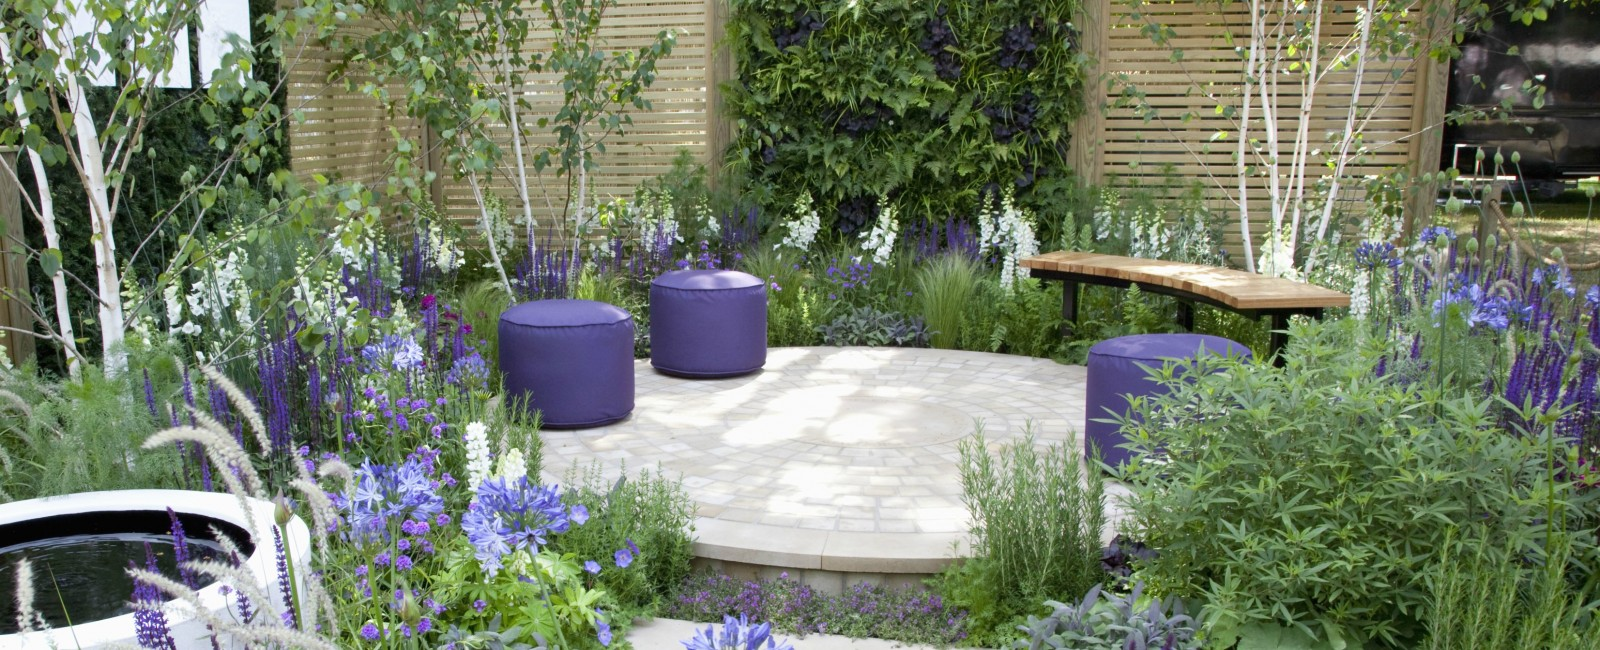 The Wellbeing of Women Garden - RHS Silver-Gilt Medal & RHS People's Choice Small Garden